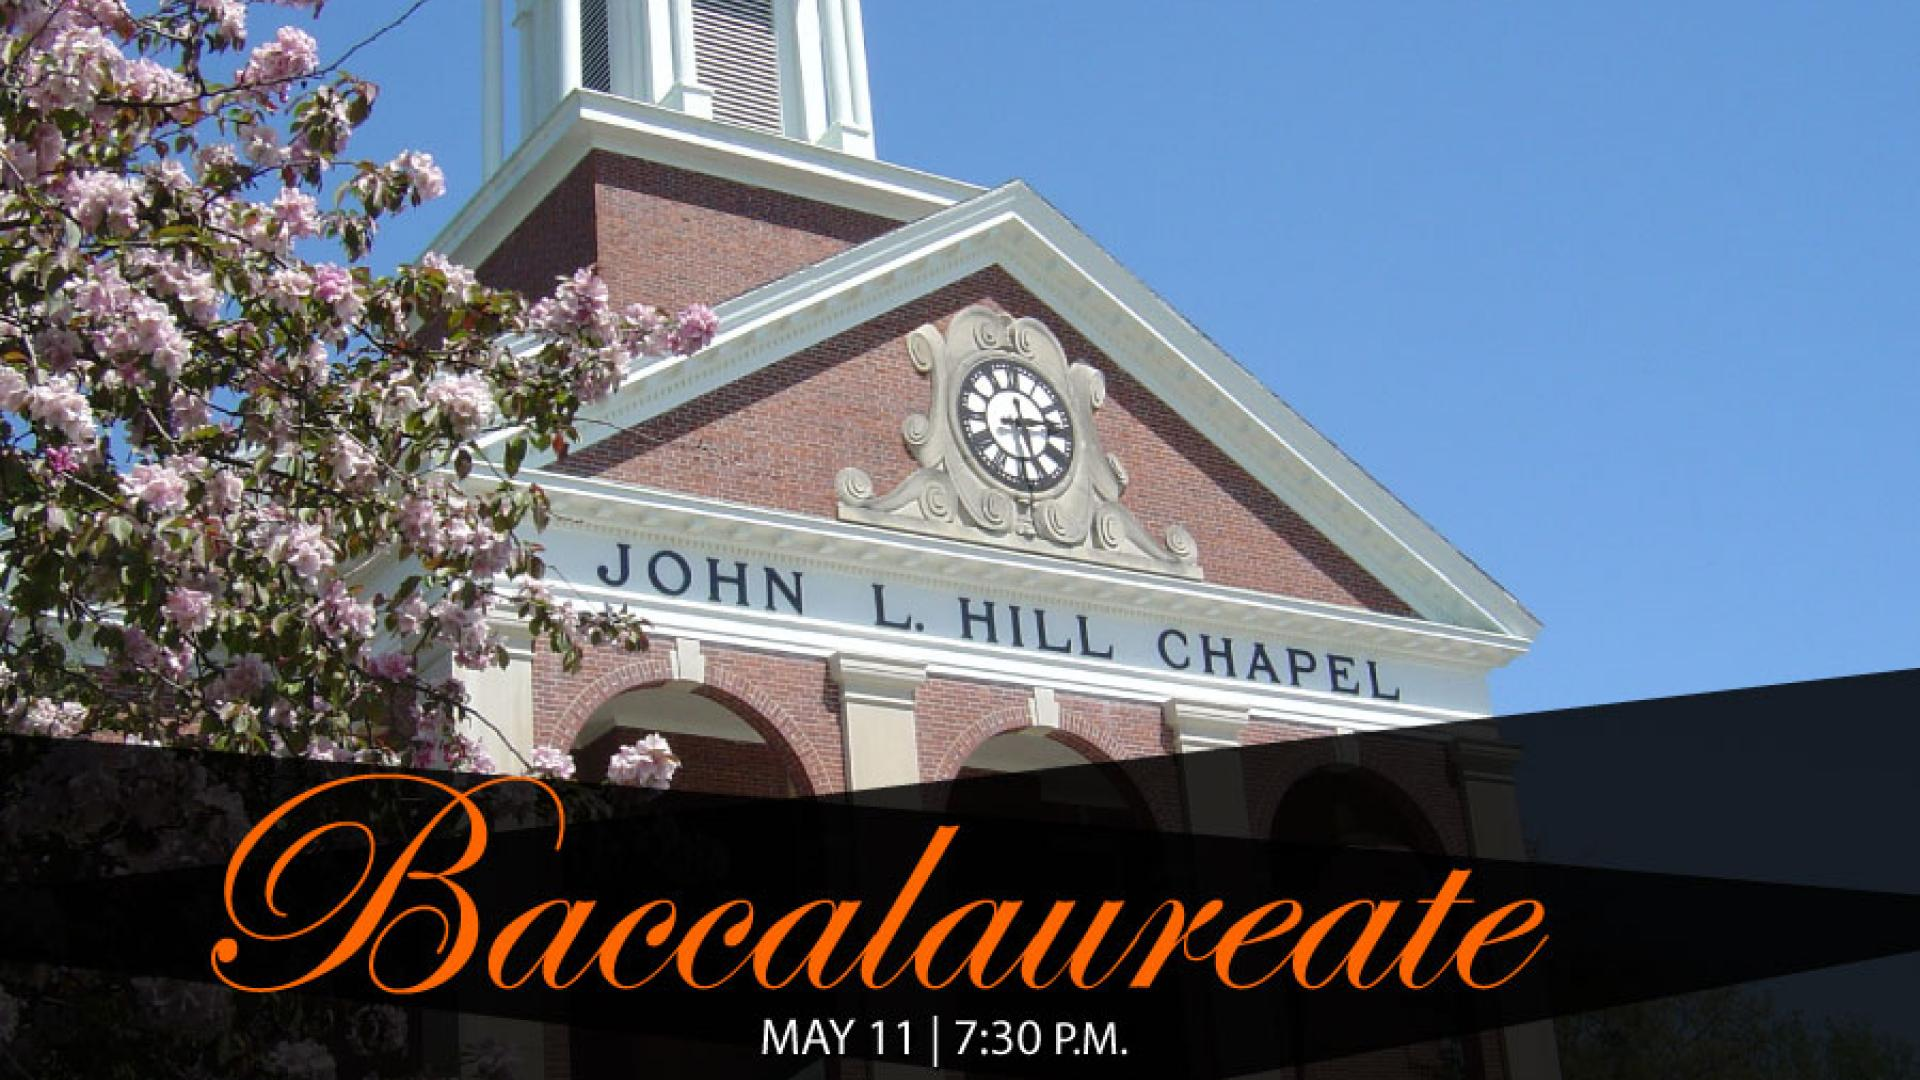 2018 Baccalaureate in John L. Hill Chapel